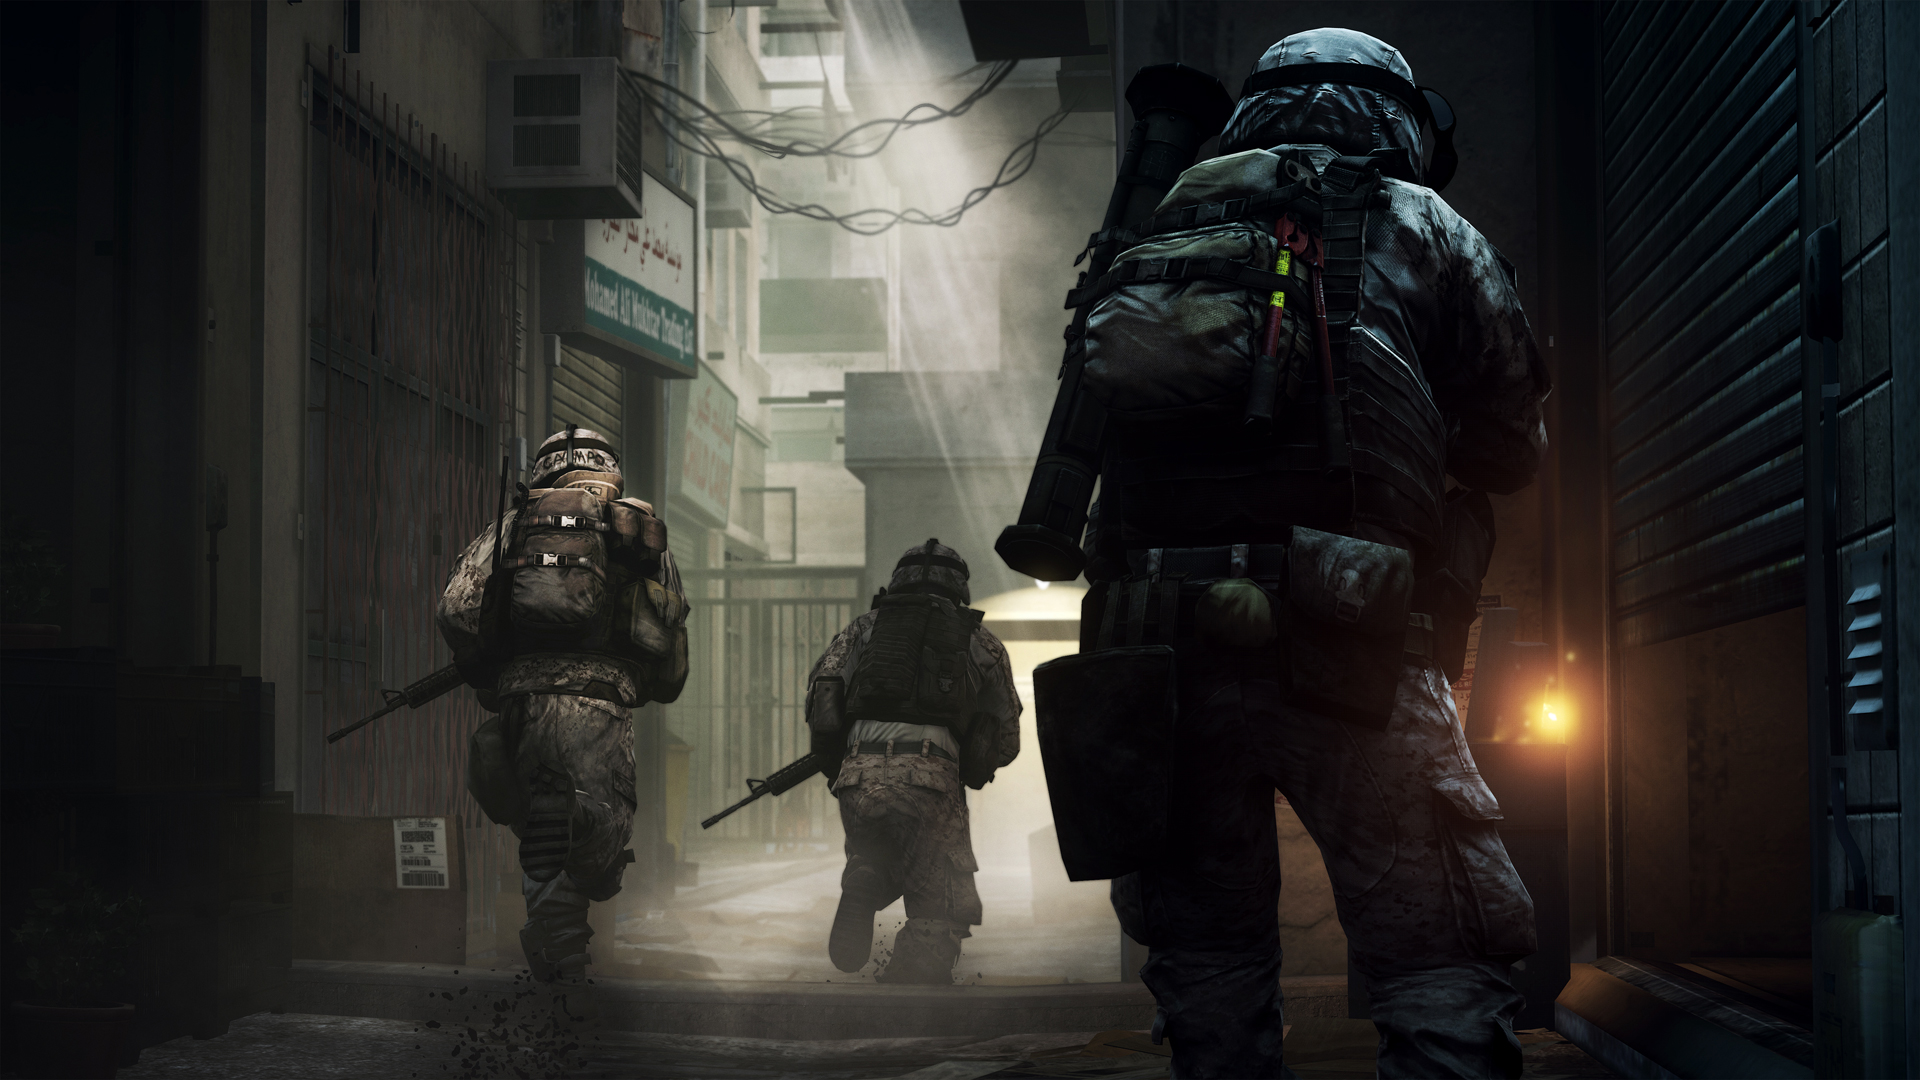 Electronic Arts adds Battlefield.net to its arsenal of killer domains as it prepares to battle Modern Warfare 3